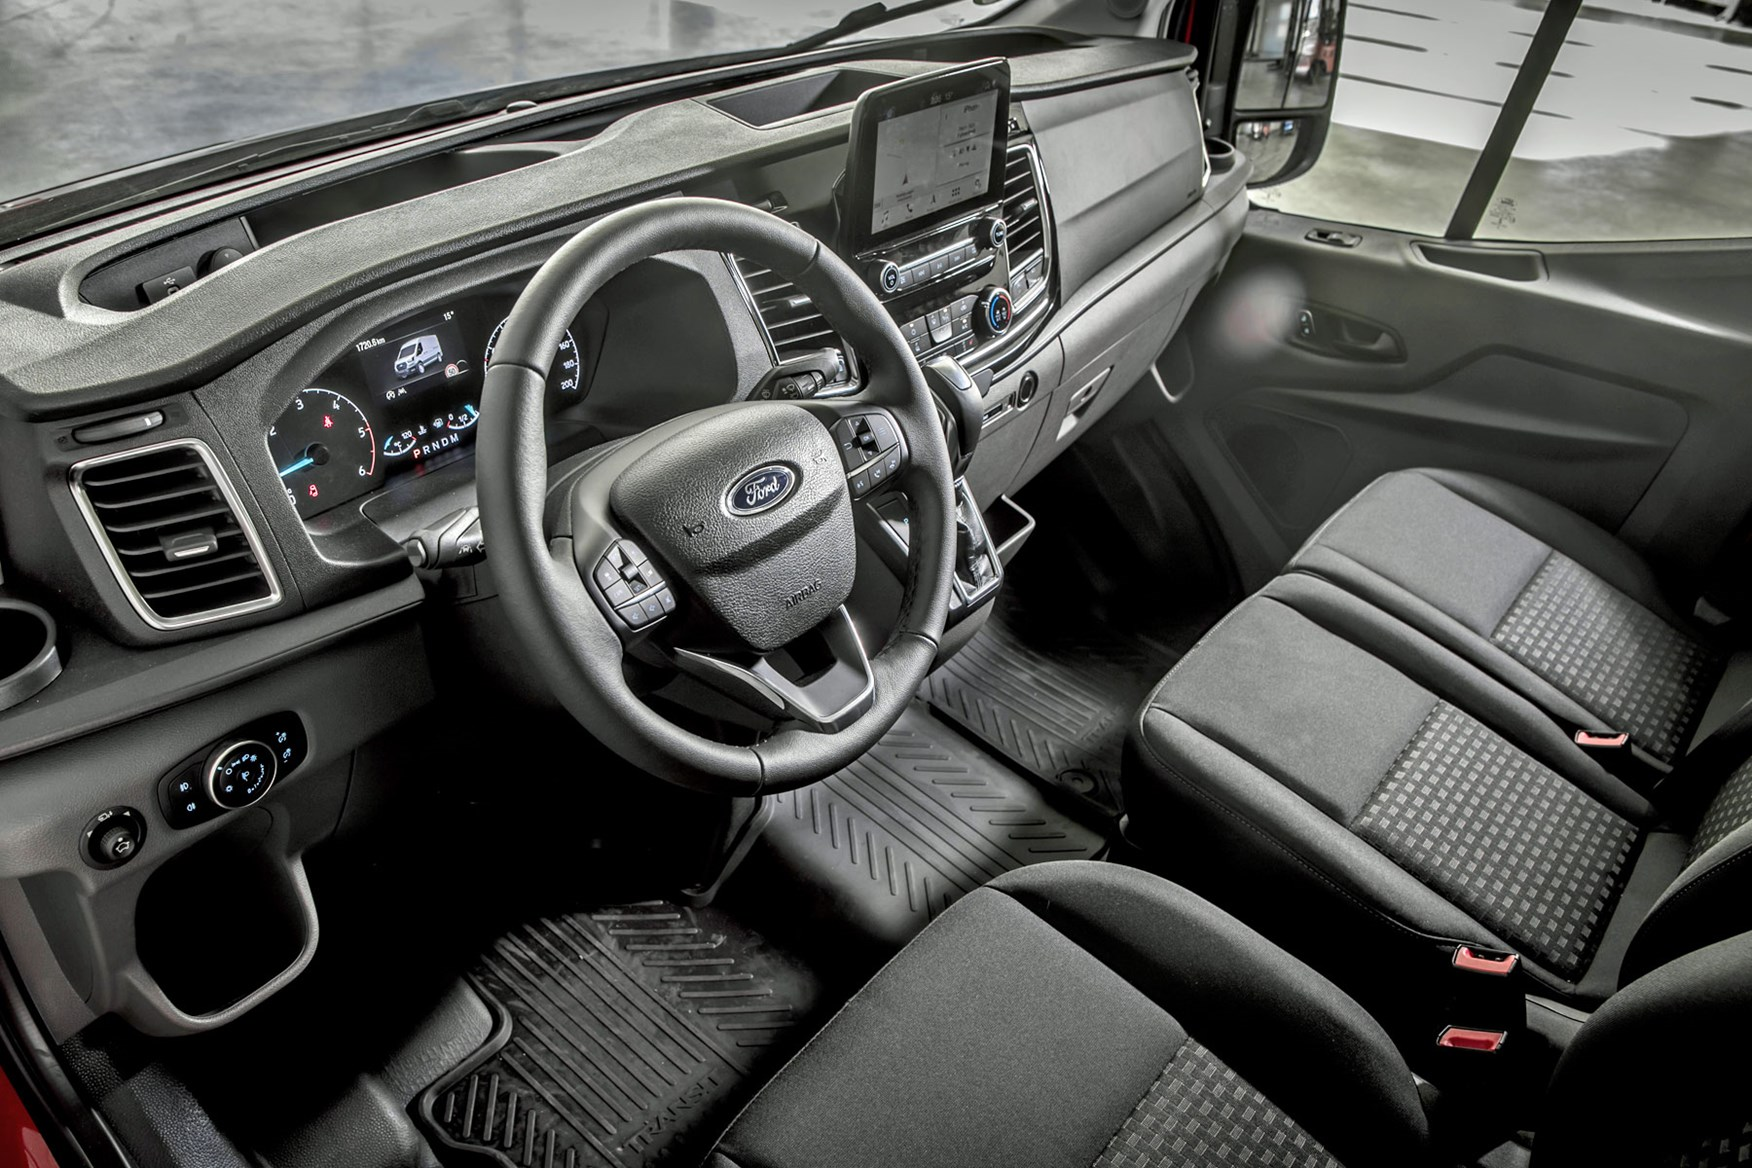 Ford Transit review - 2019 facelift model, dashboard, steering wheel, instrument cluster and Ford Sync touchscreen